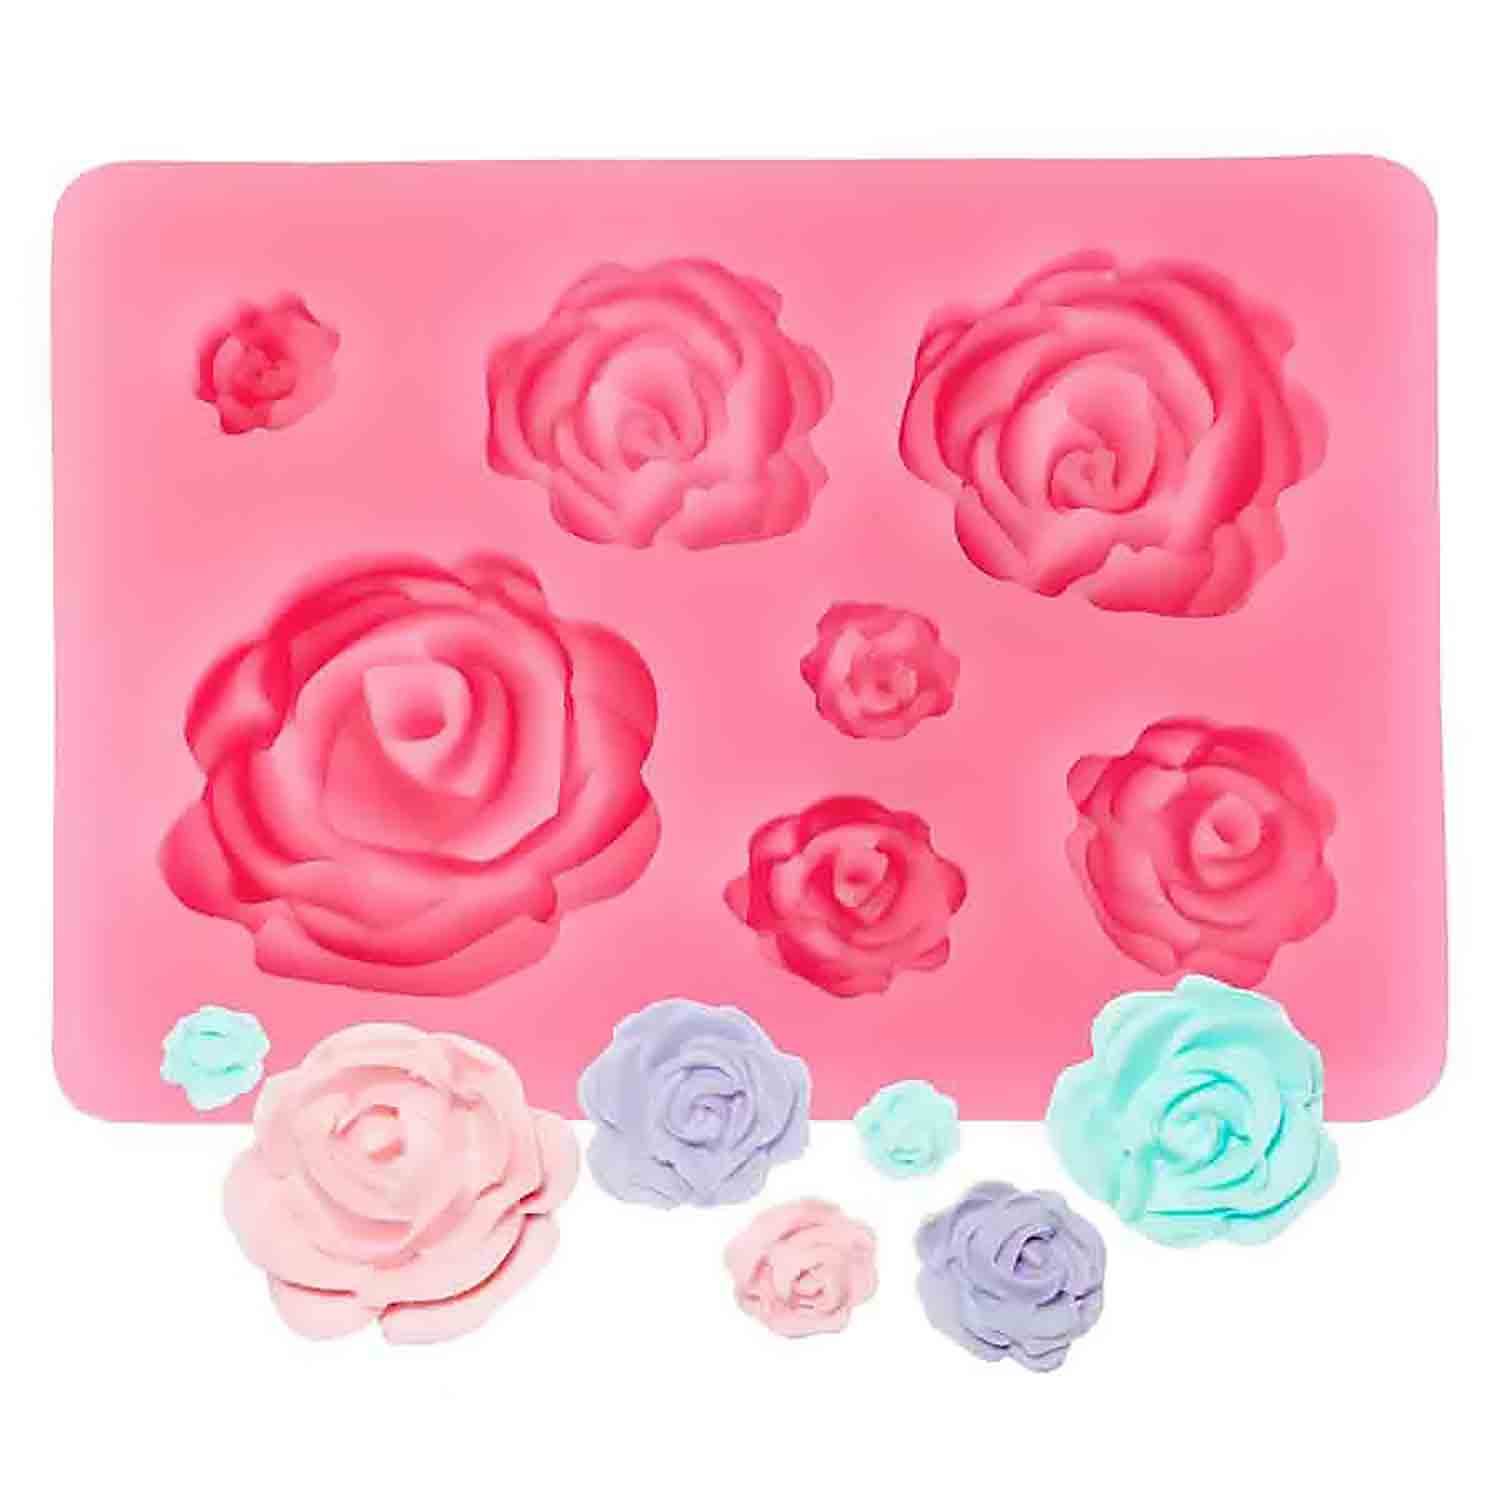 Bourbon Rose Silicone Mold